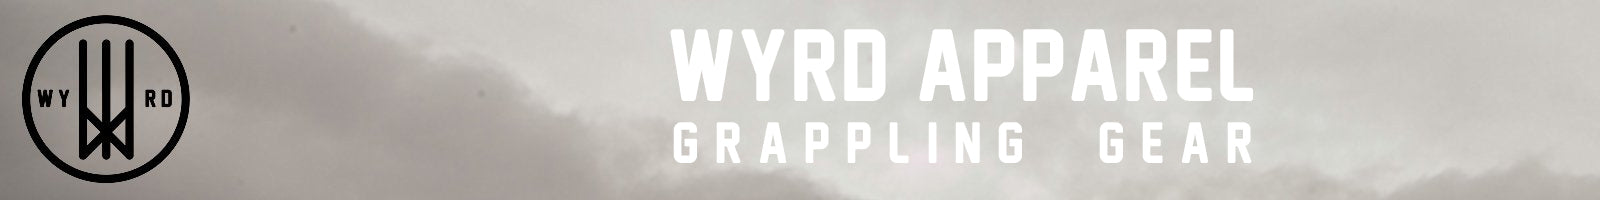 Wyrd Apparel: Grappling Gear